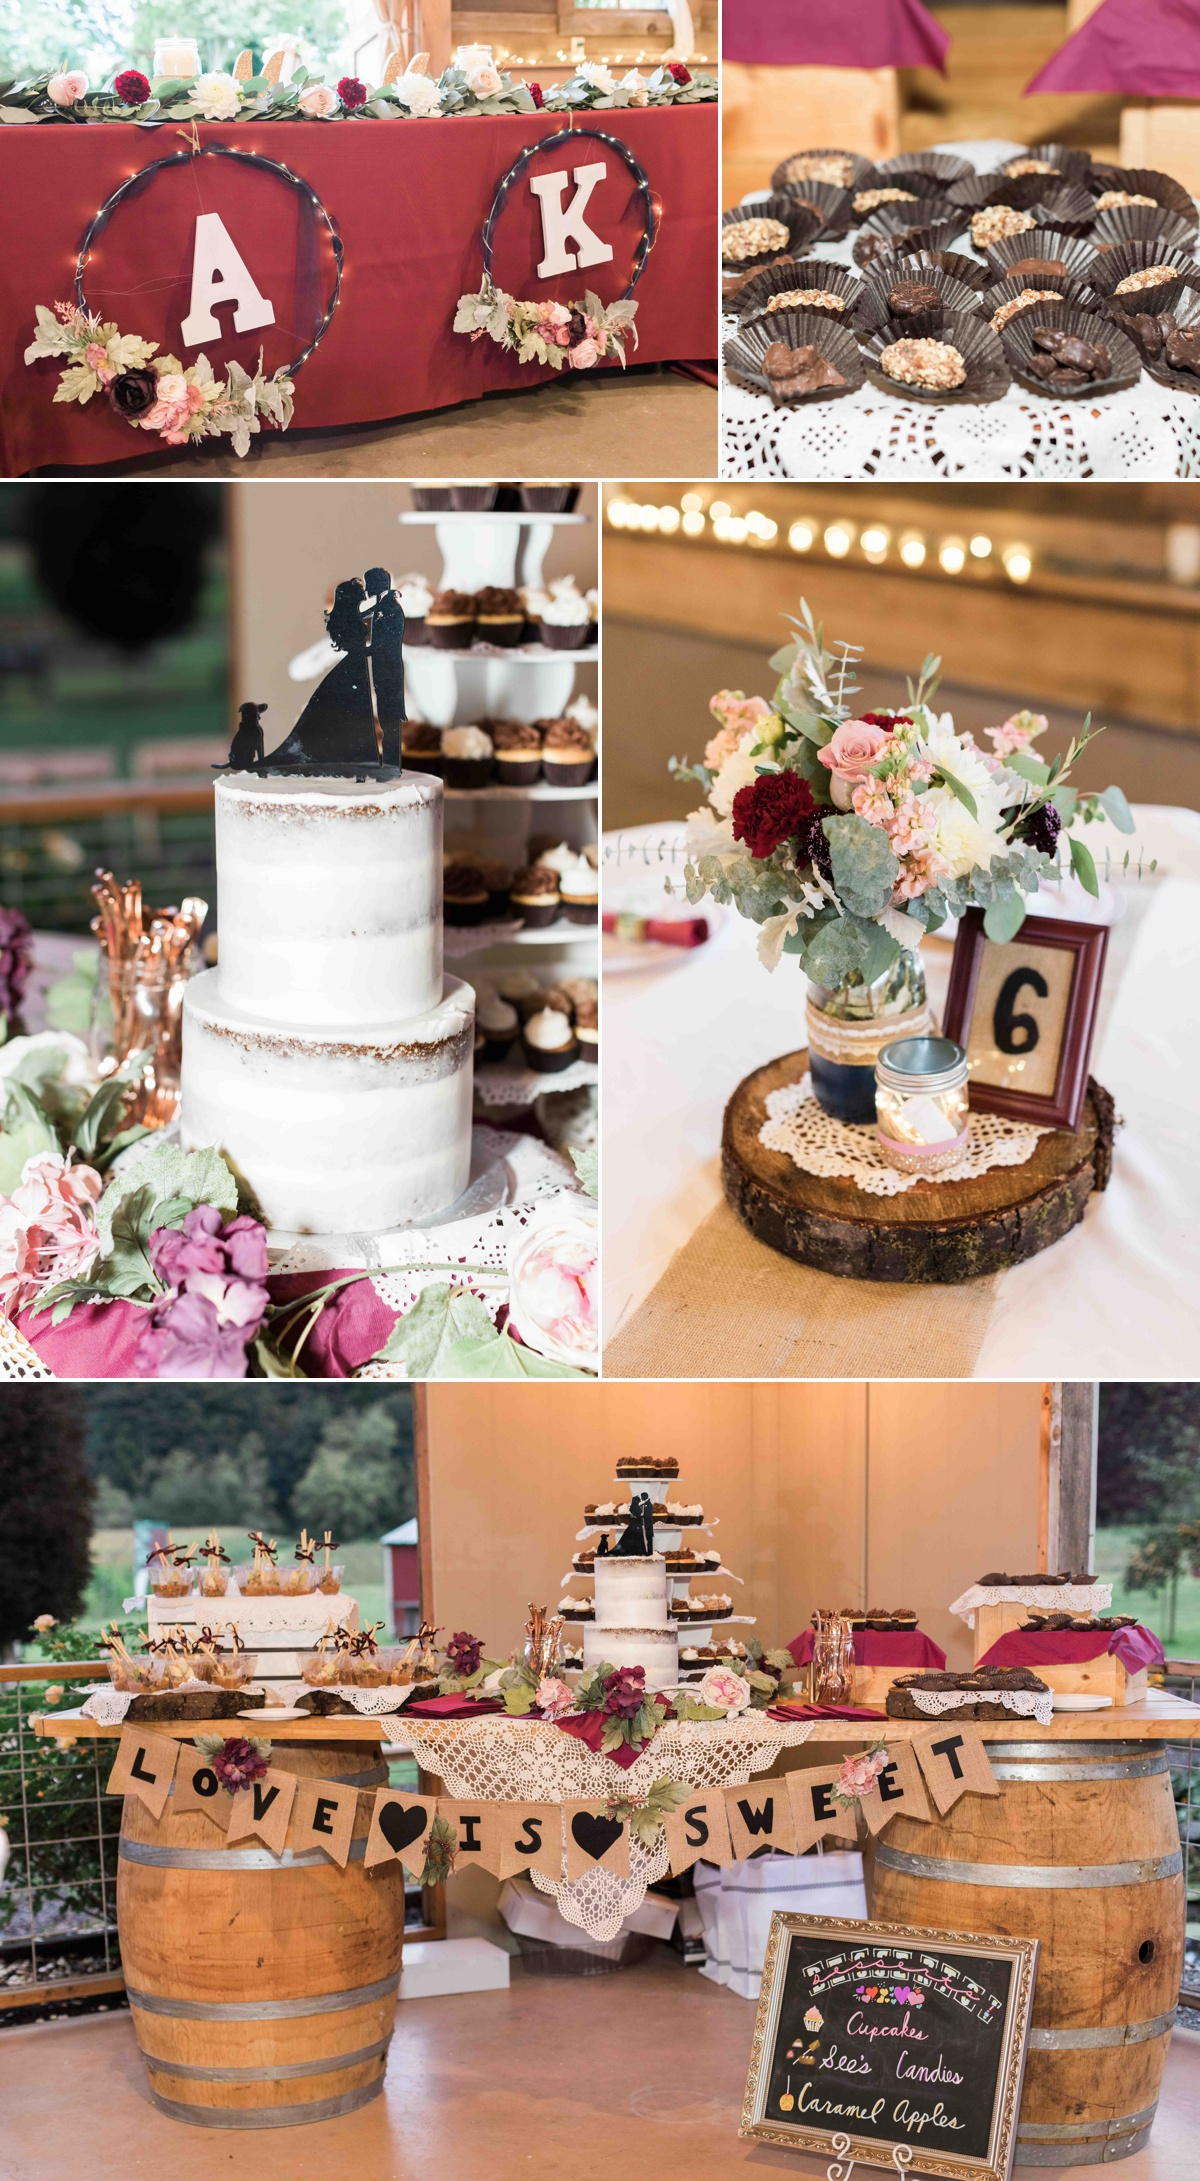 Wedding cake at Craven Farms in Snohomish. Photos by Joanna Monger Photography, Snohomish and Woodinville Wedding Photographer.